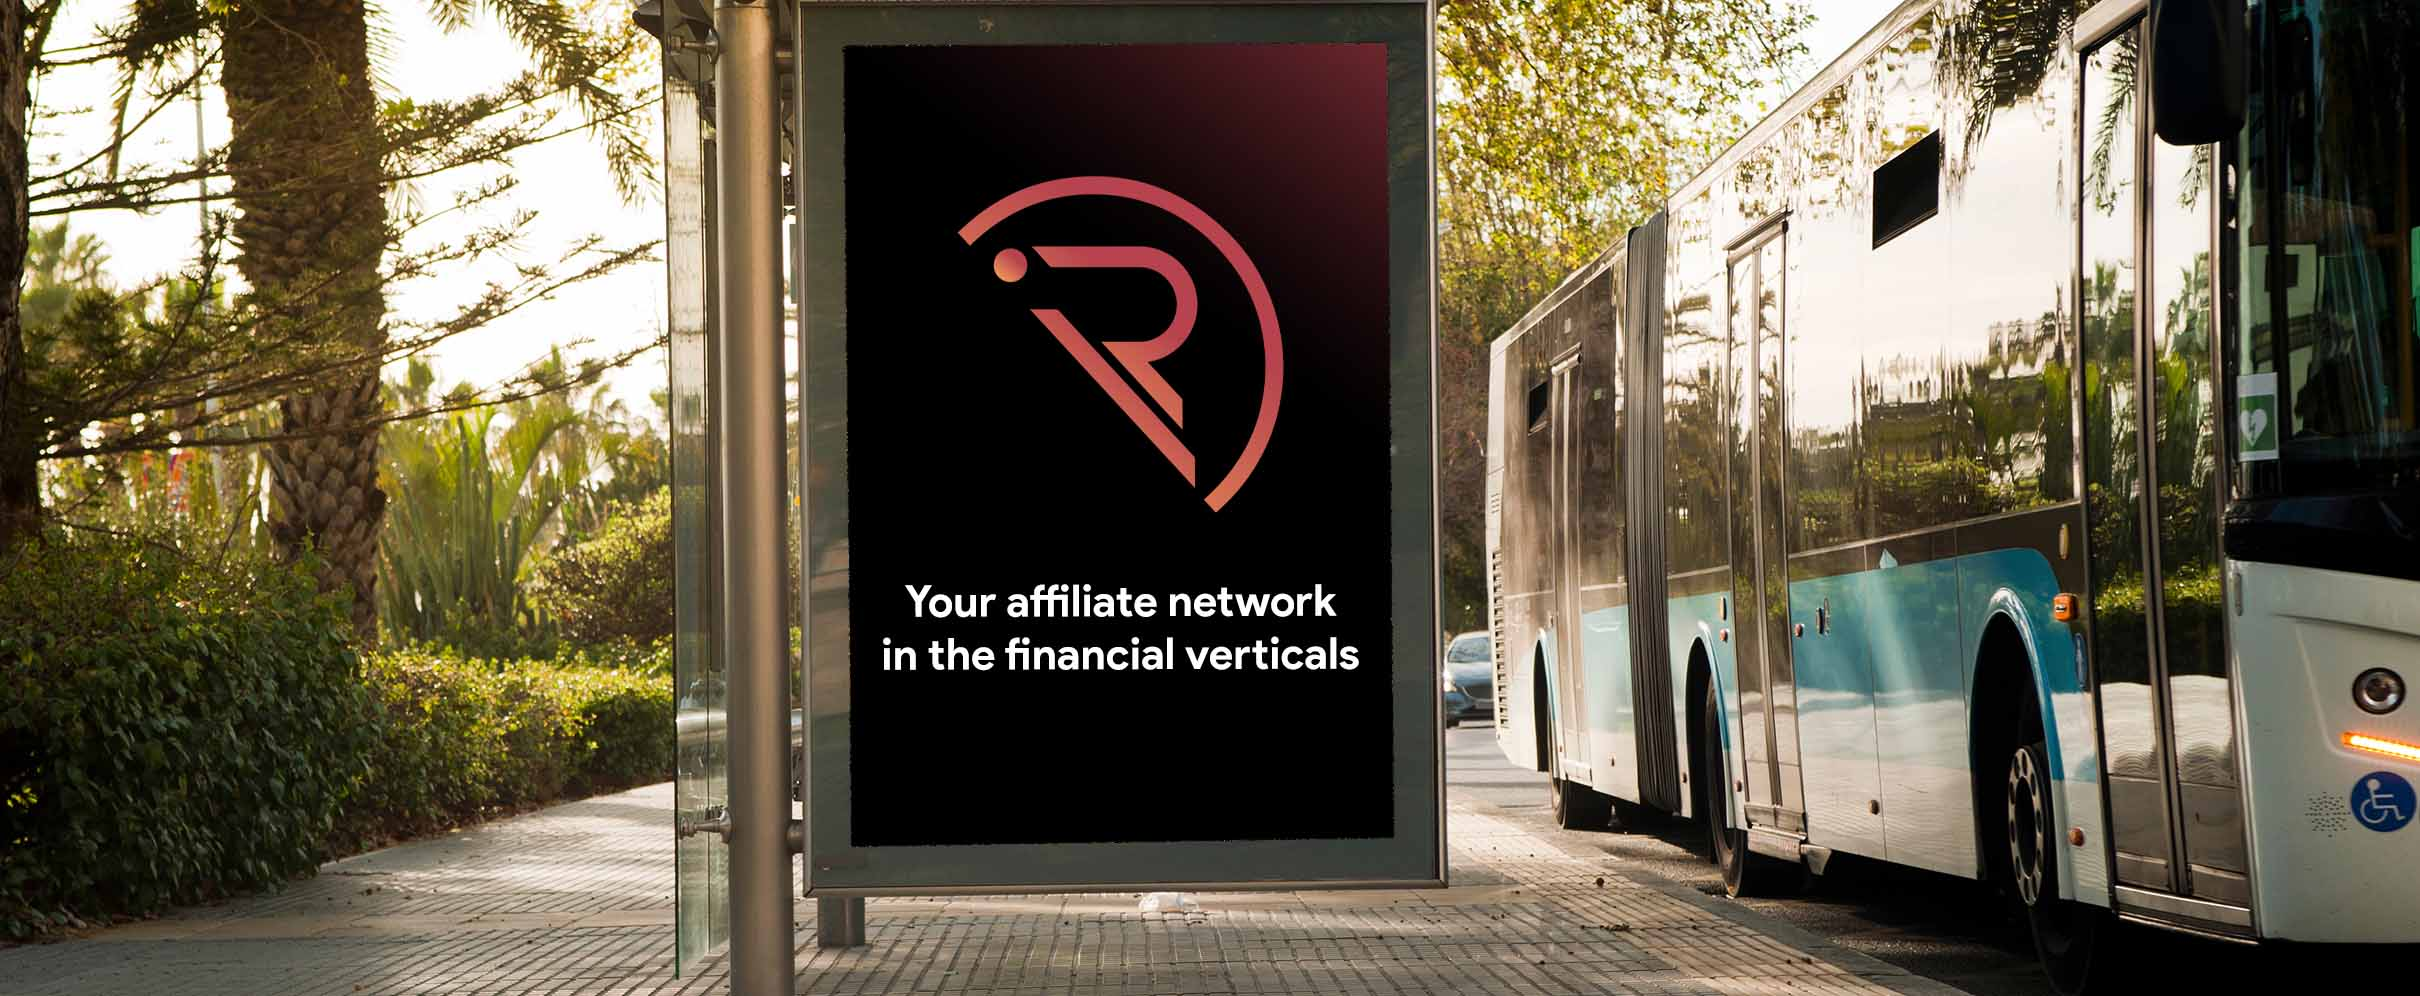 a bus stop that has a big sign that says 'Your affiliate network in the financial verticals'